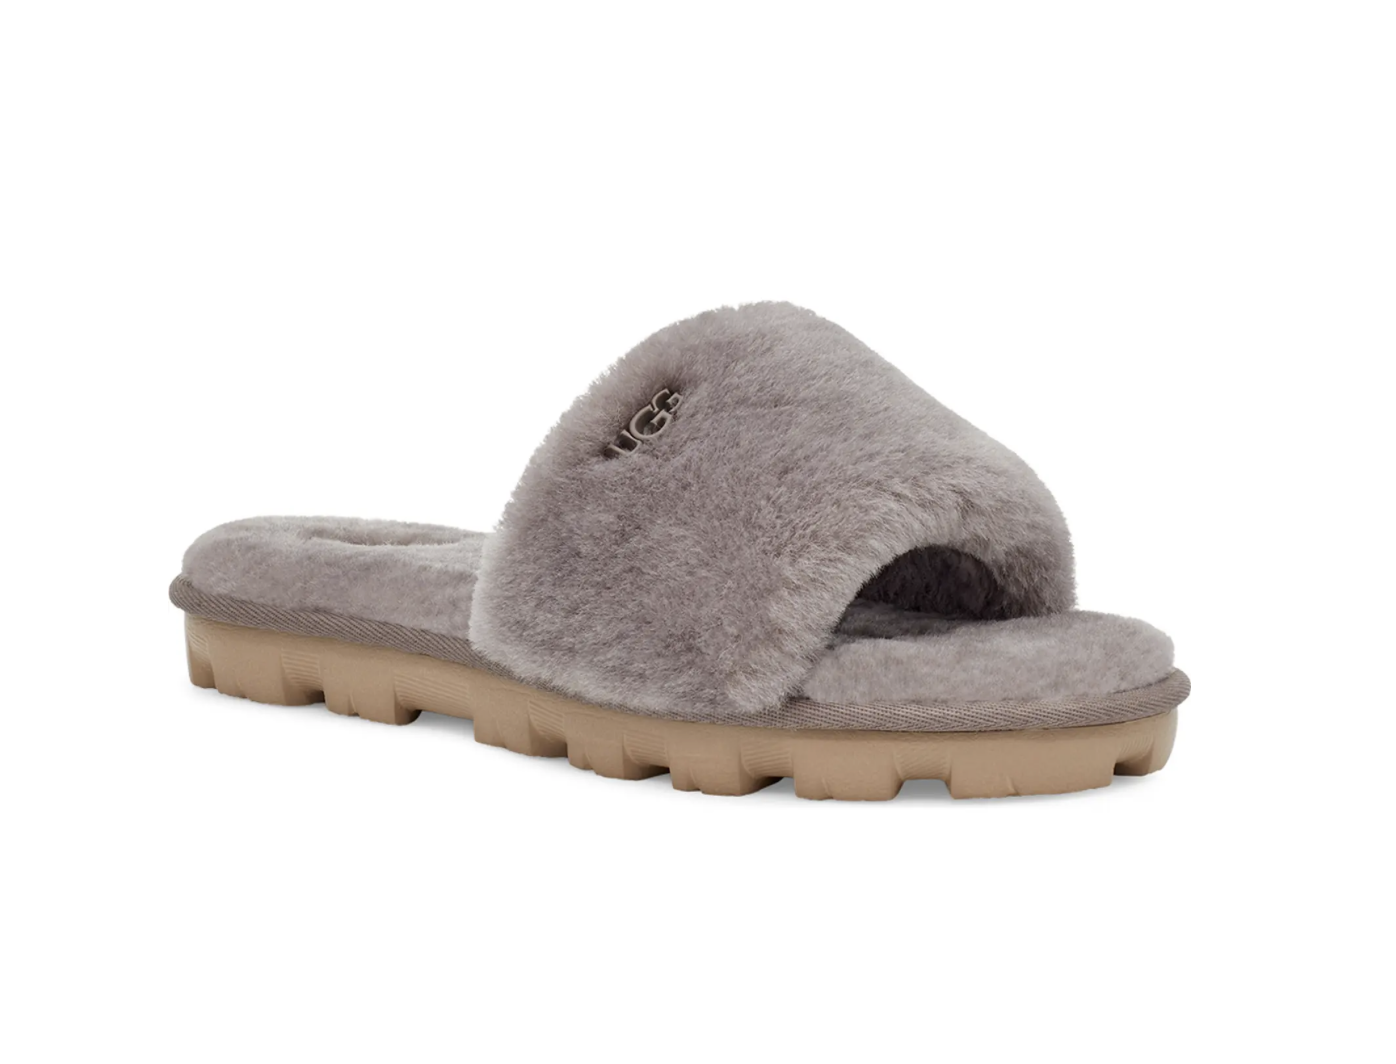 Ugg Cozette slippers